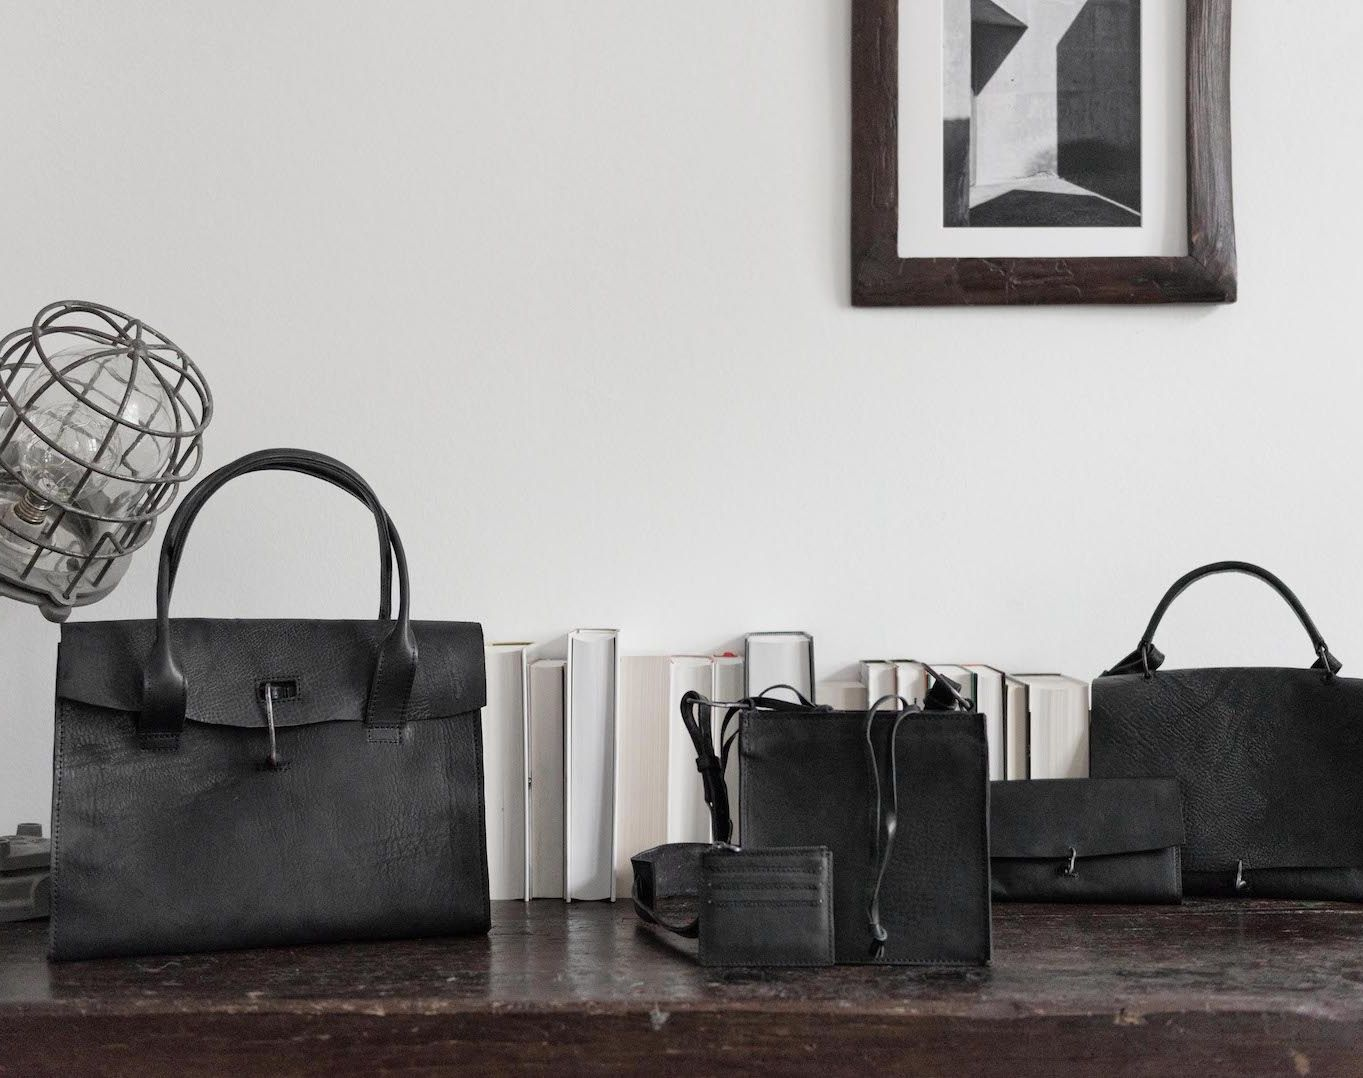 Tagliovio - Leather Bag, Leather Wallet, Leather Belt in black | eigensinnig wien